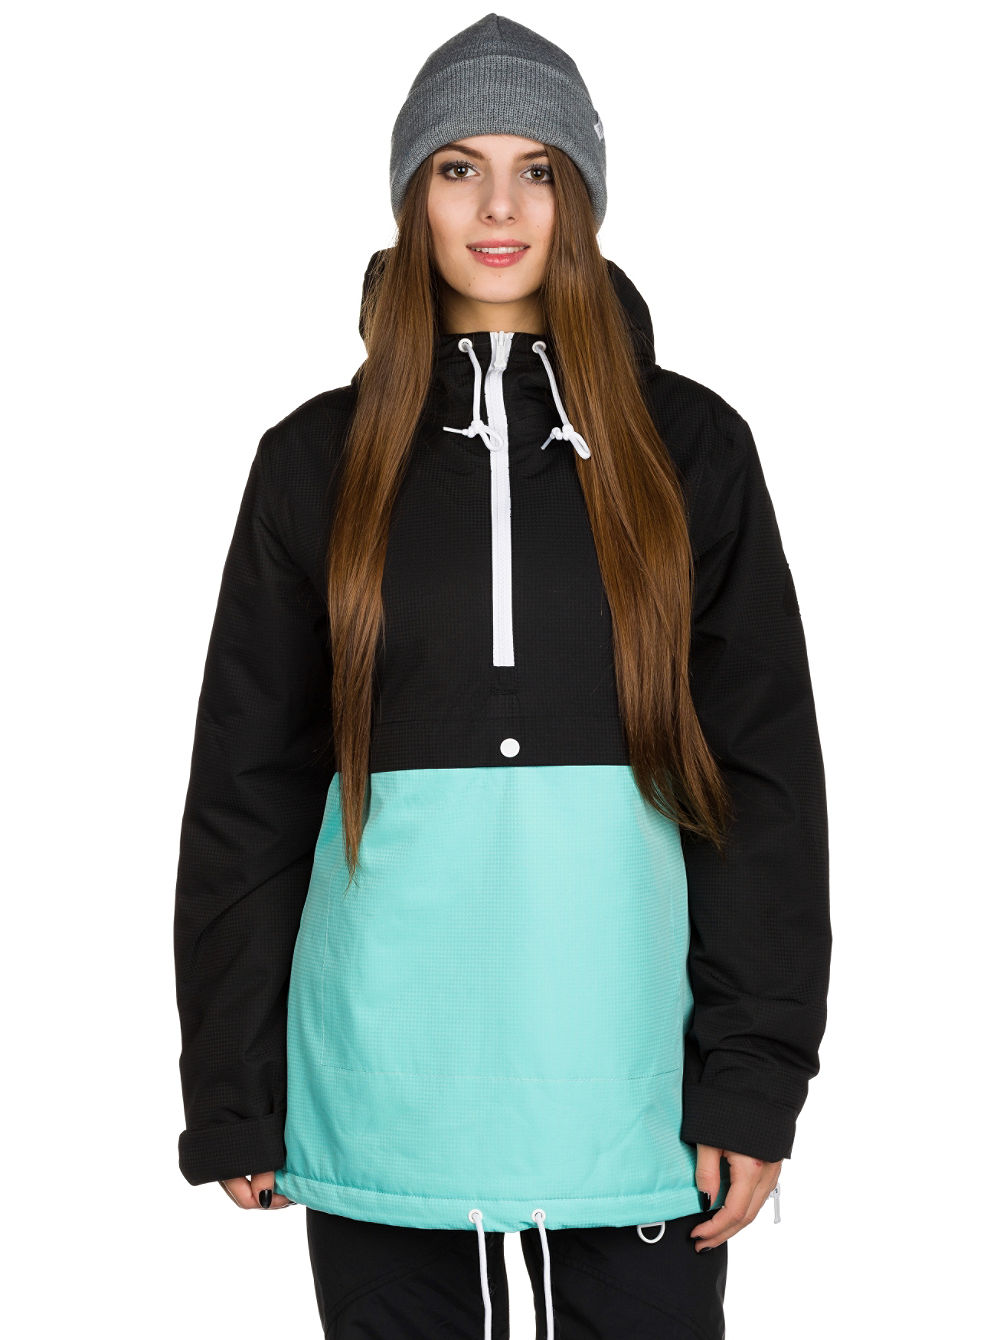 aperture-girls-olympic-anorak-jacket